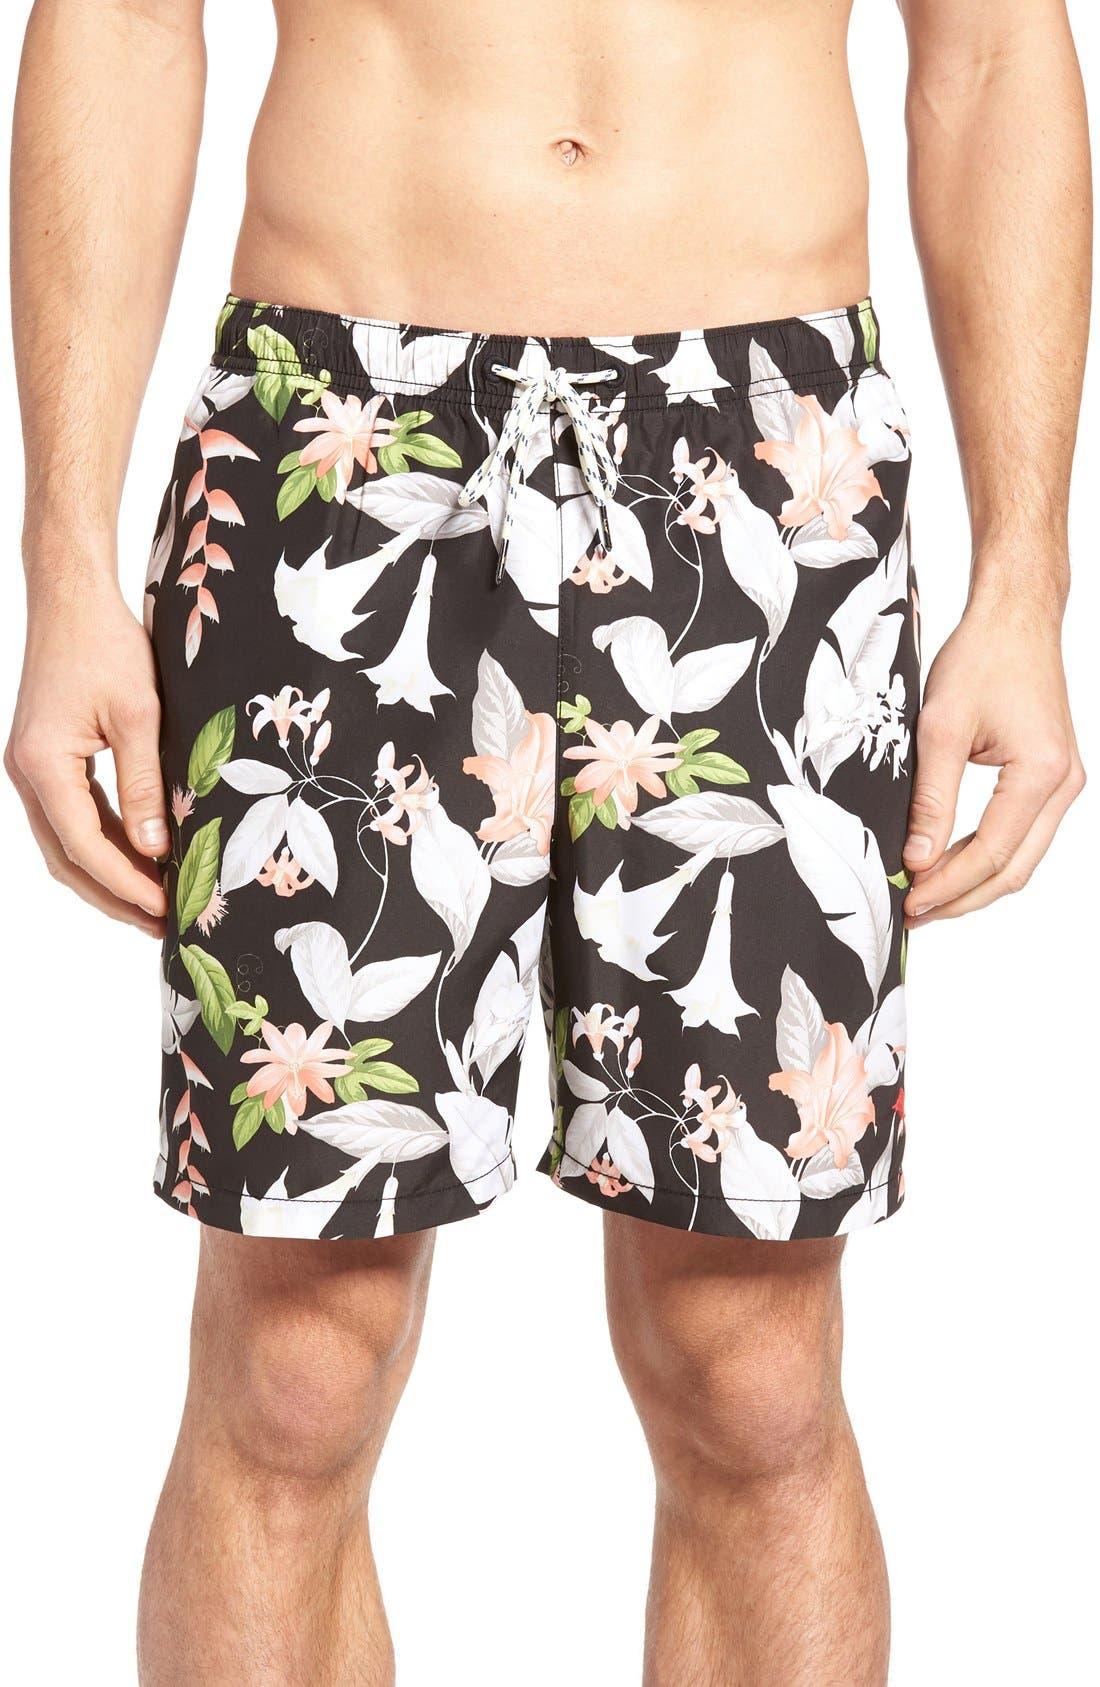 Naples Brego Blooms Swim Trunks,                         Main,                         color, Jet Black